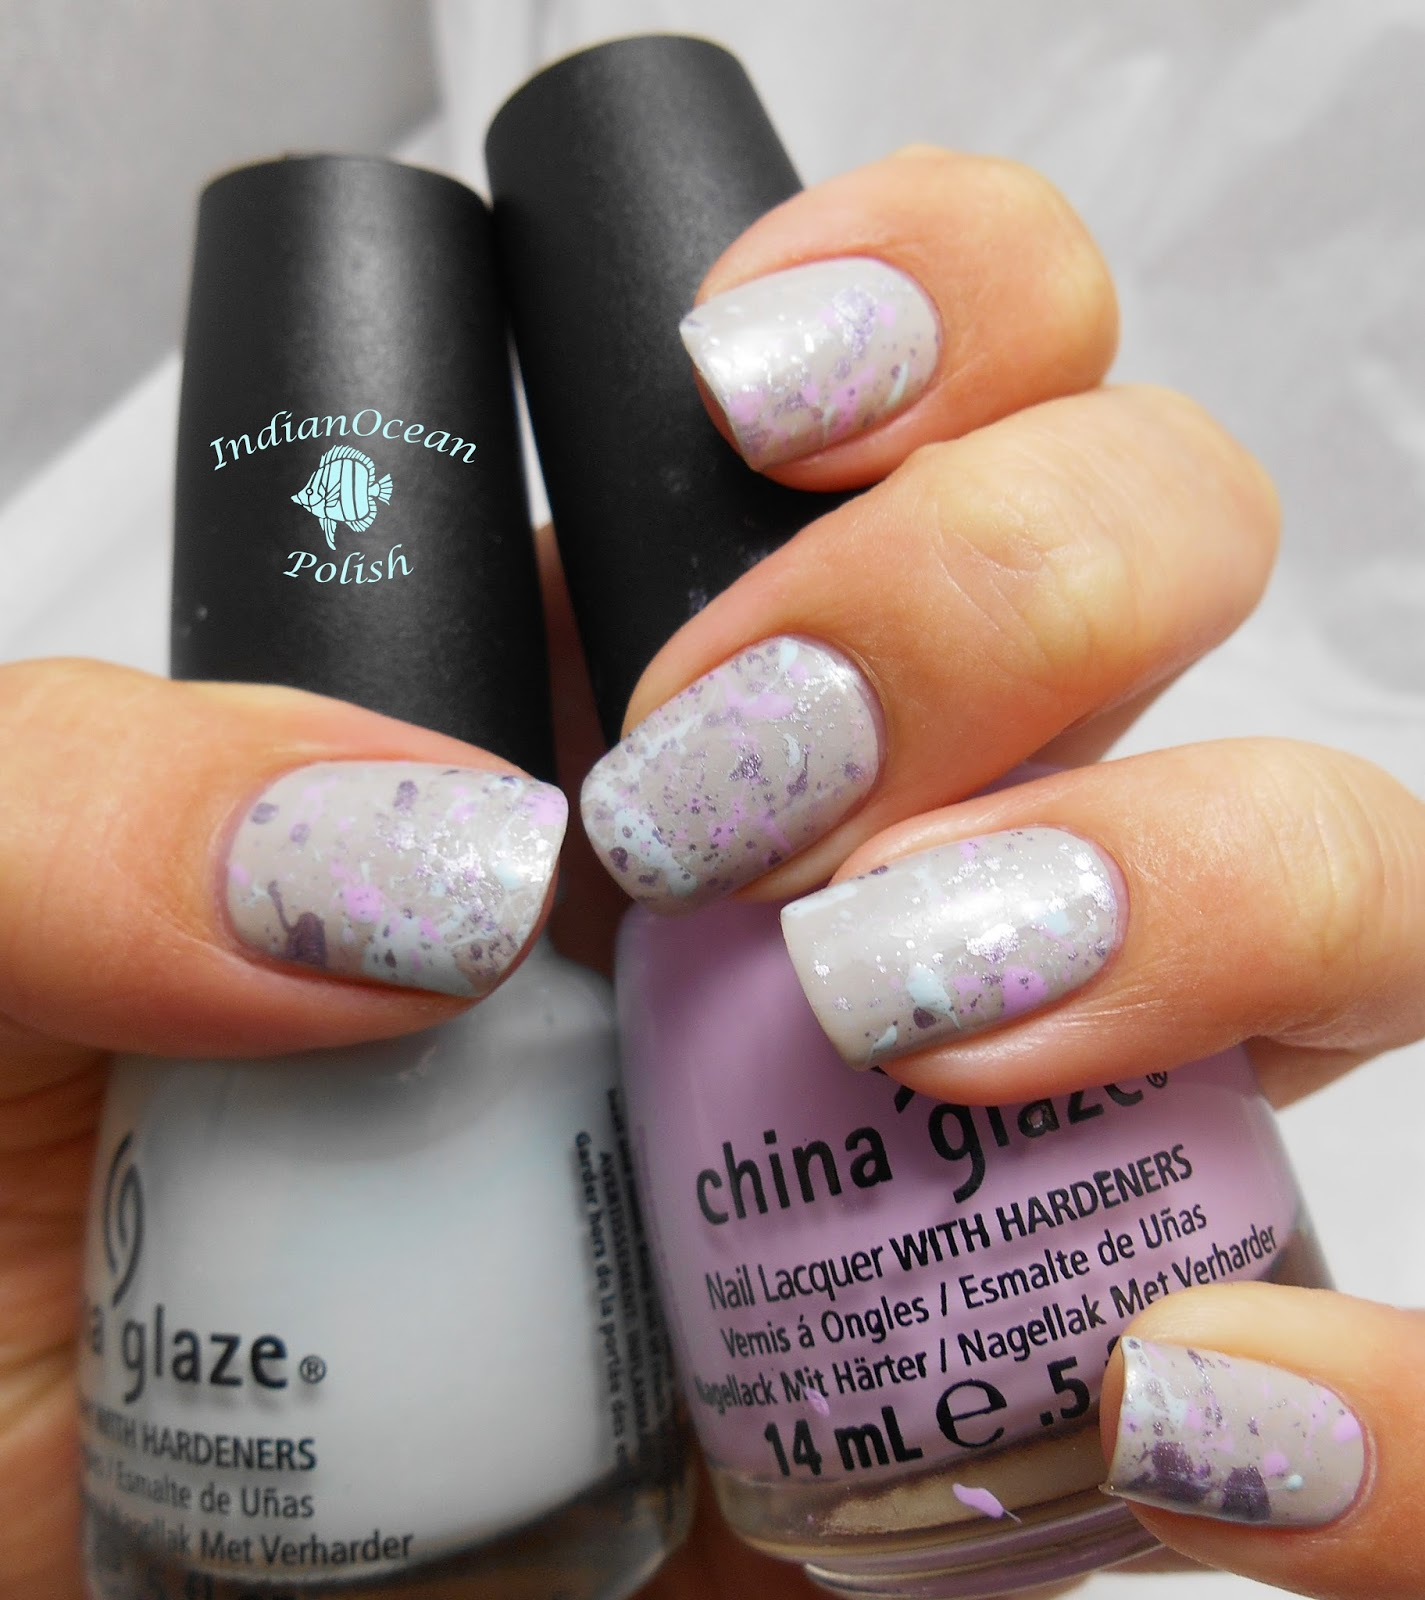 Indian ocean polish pastel paint splatter nail art tutorial pastel paint splatter nail art tutorial prinsesfo Image collections